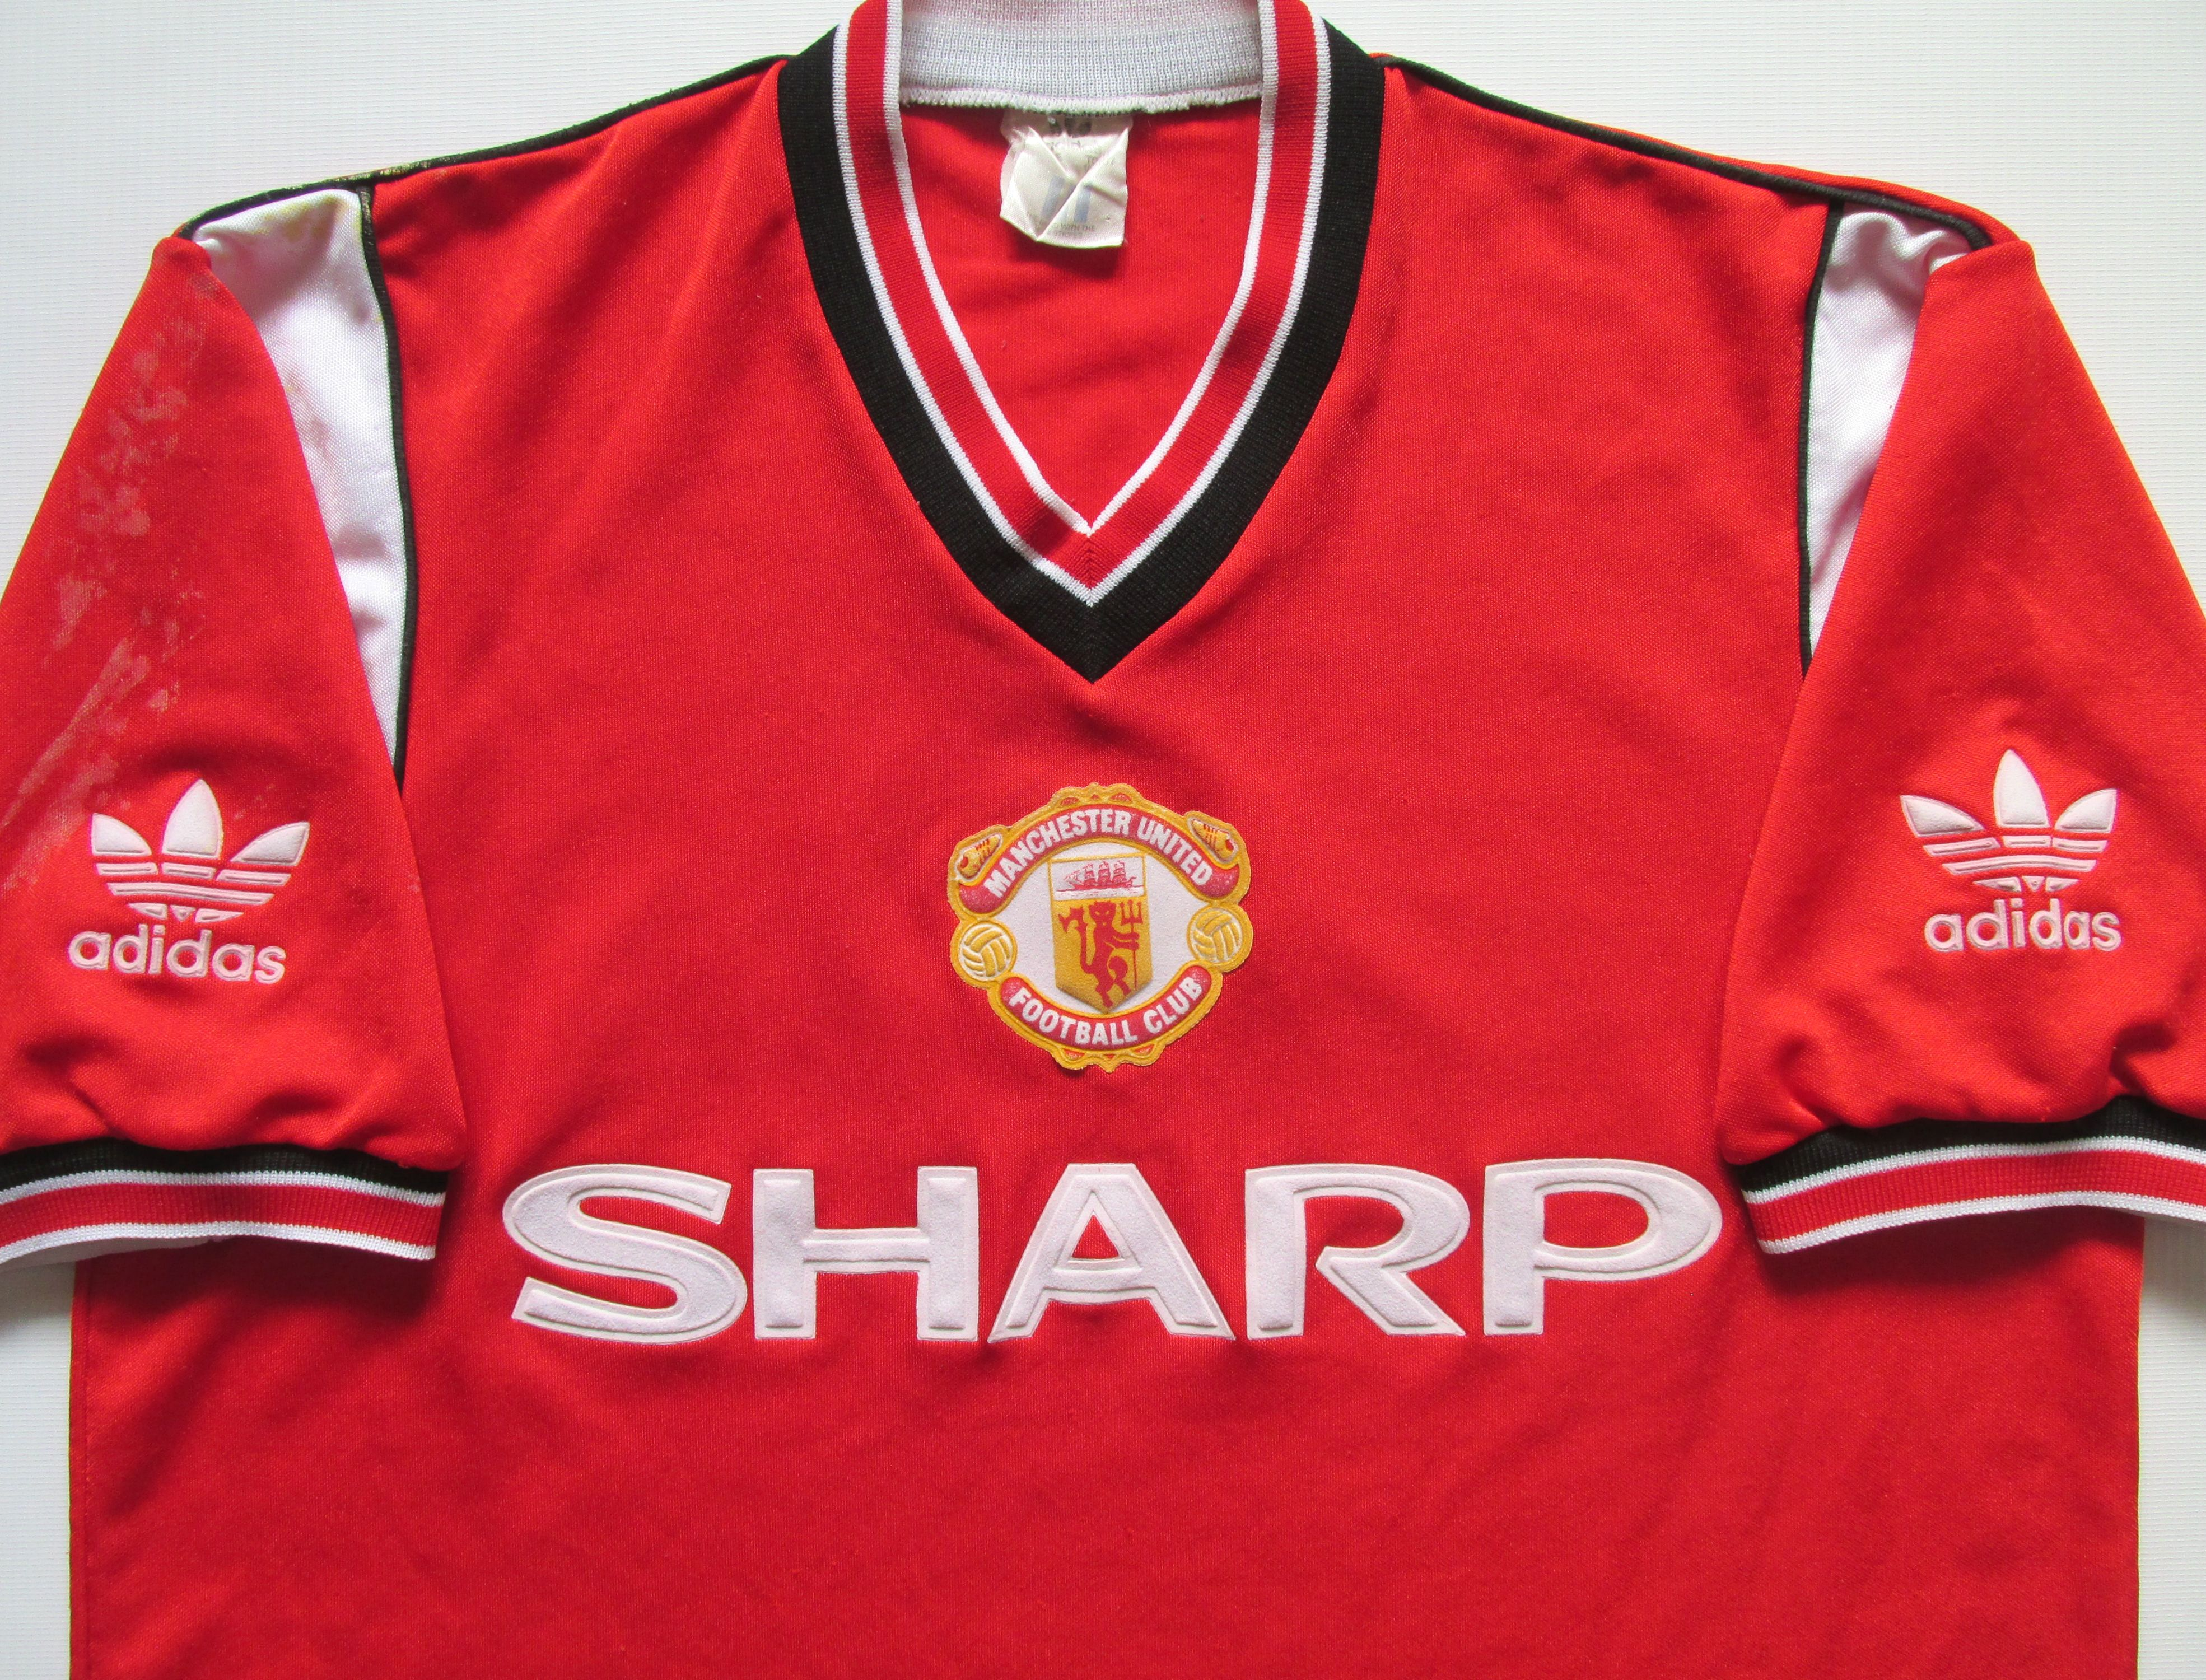 Manchester United 1984 1985 1986 Home Football Shirt By Adidas Mufc Manutd Manunited Reddevils Vintag Vintage Football Shirts Football Shirts Manchester United